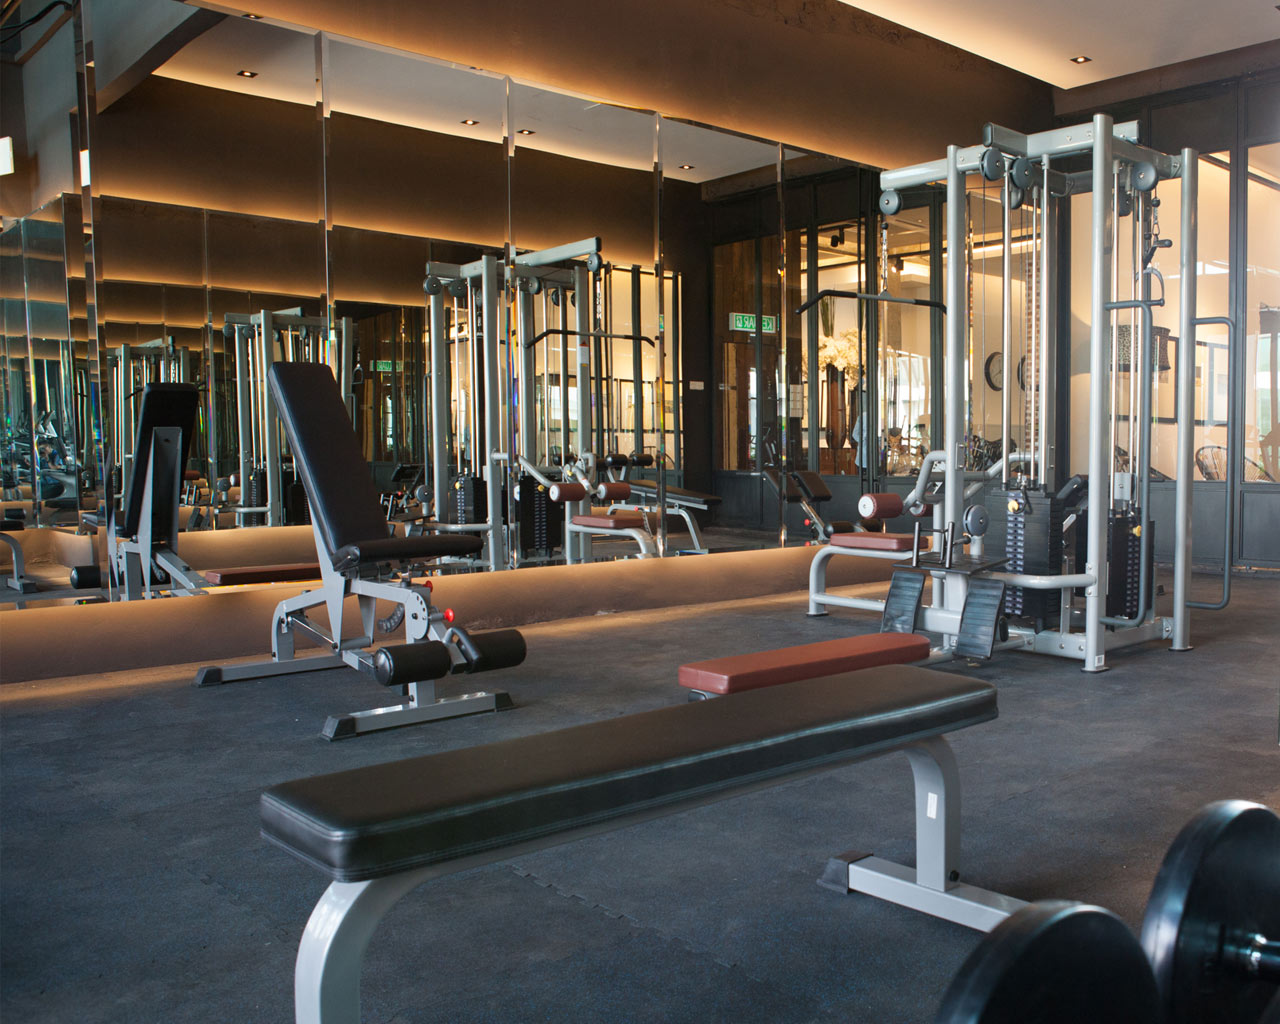 M boutique ipoh workout keep fit